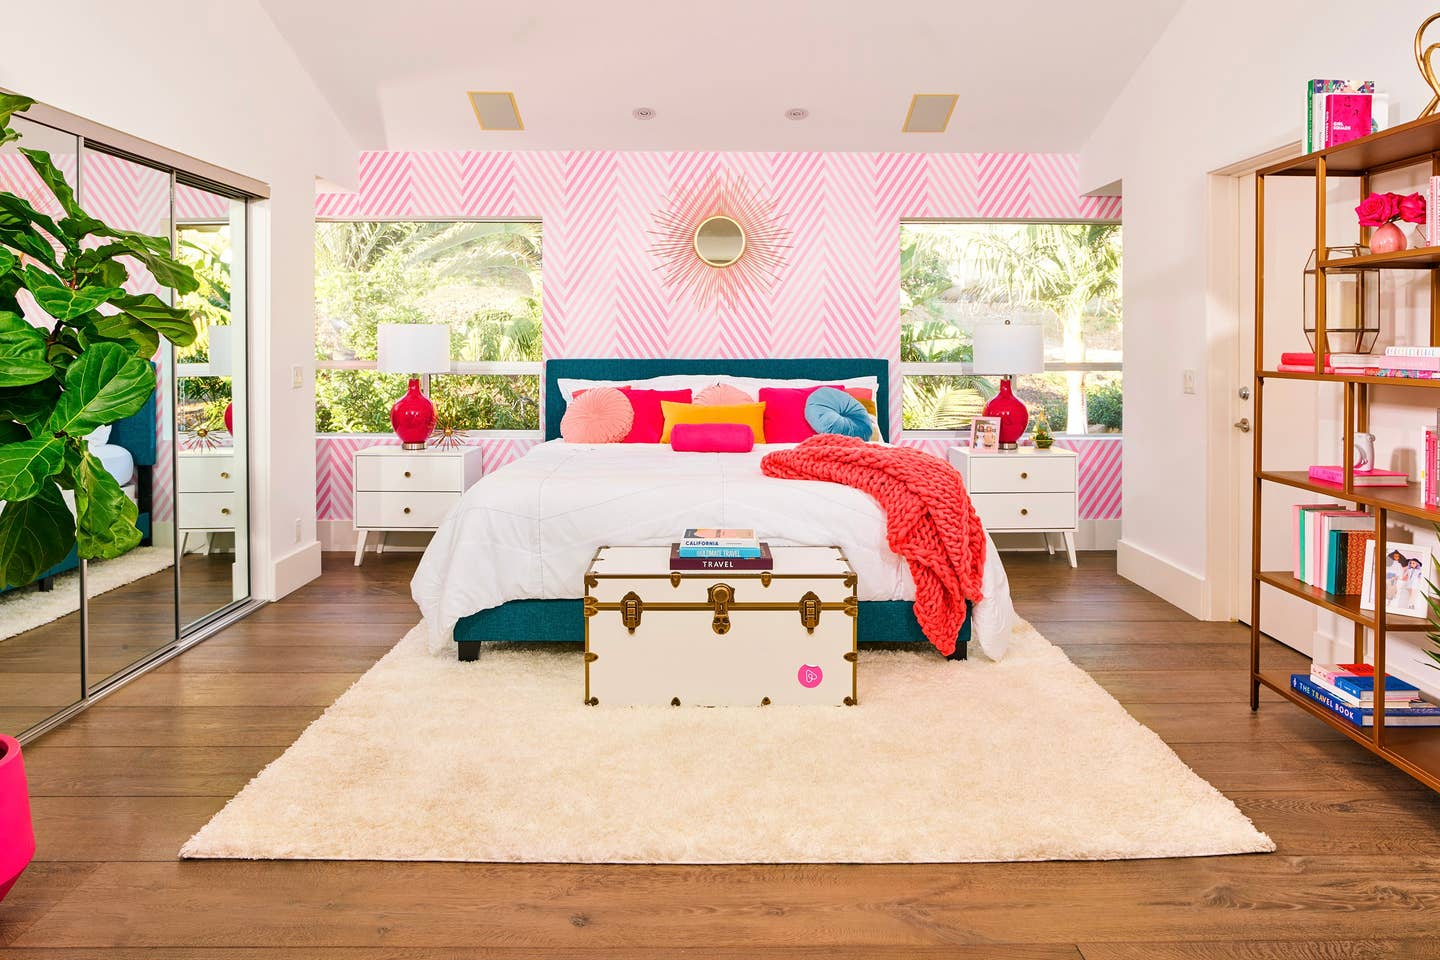 Barbie's Malibu Dreamhouse Airbnb